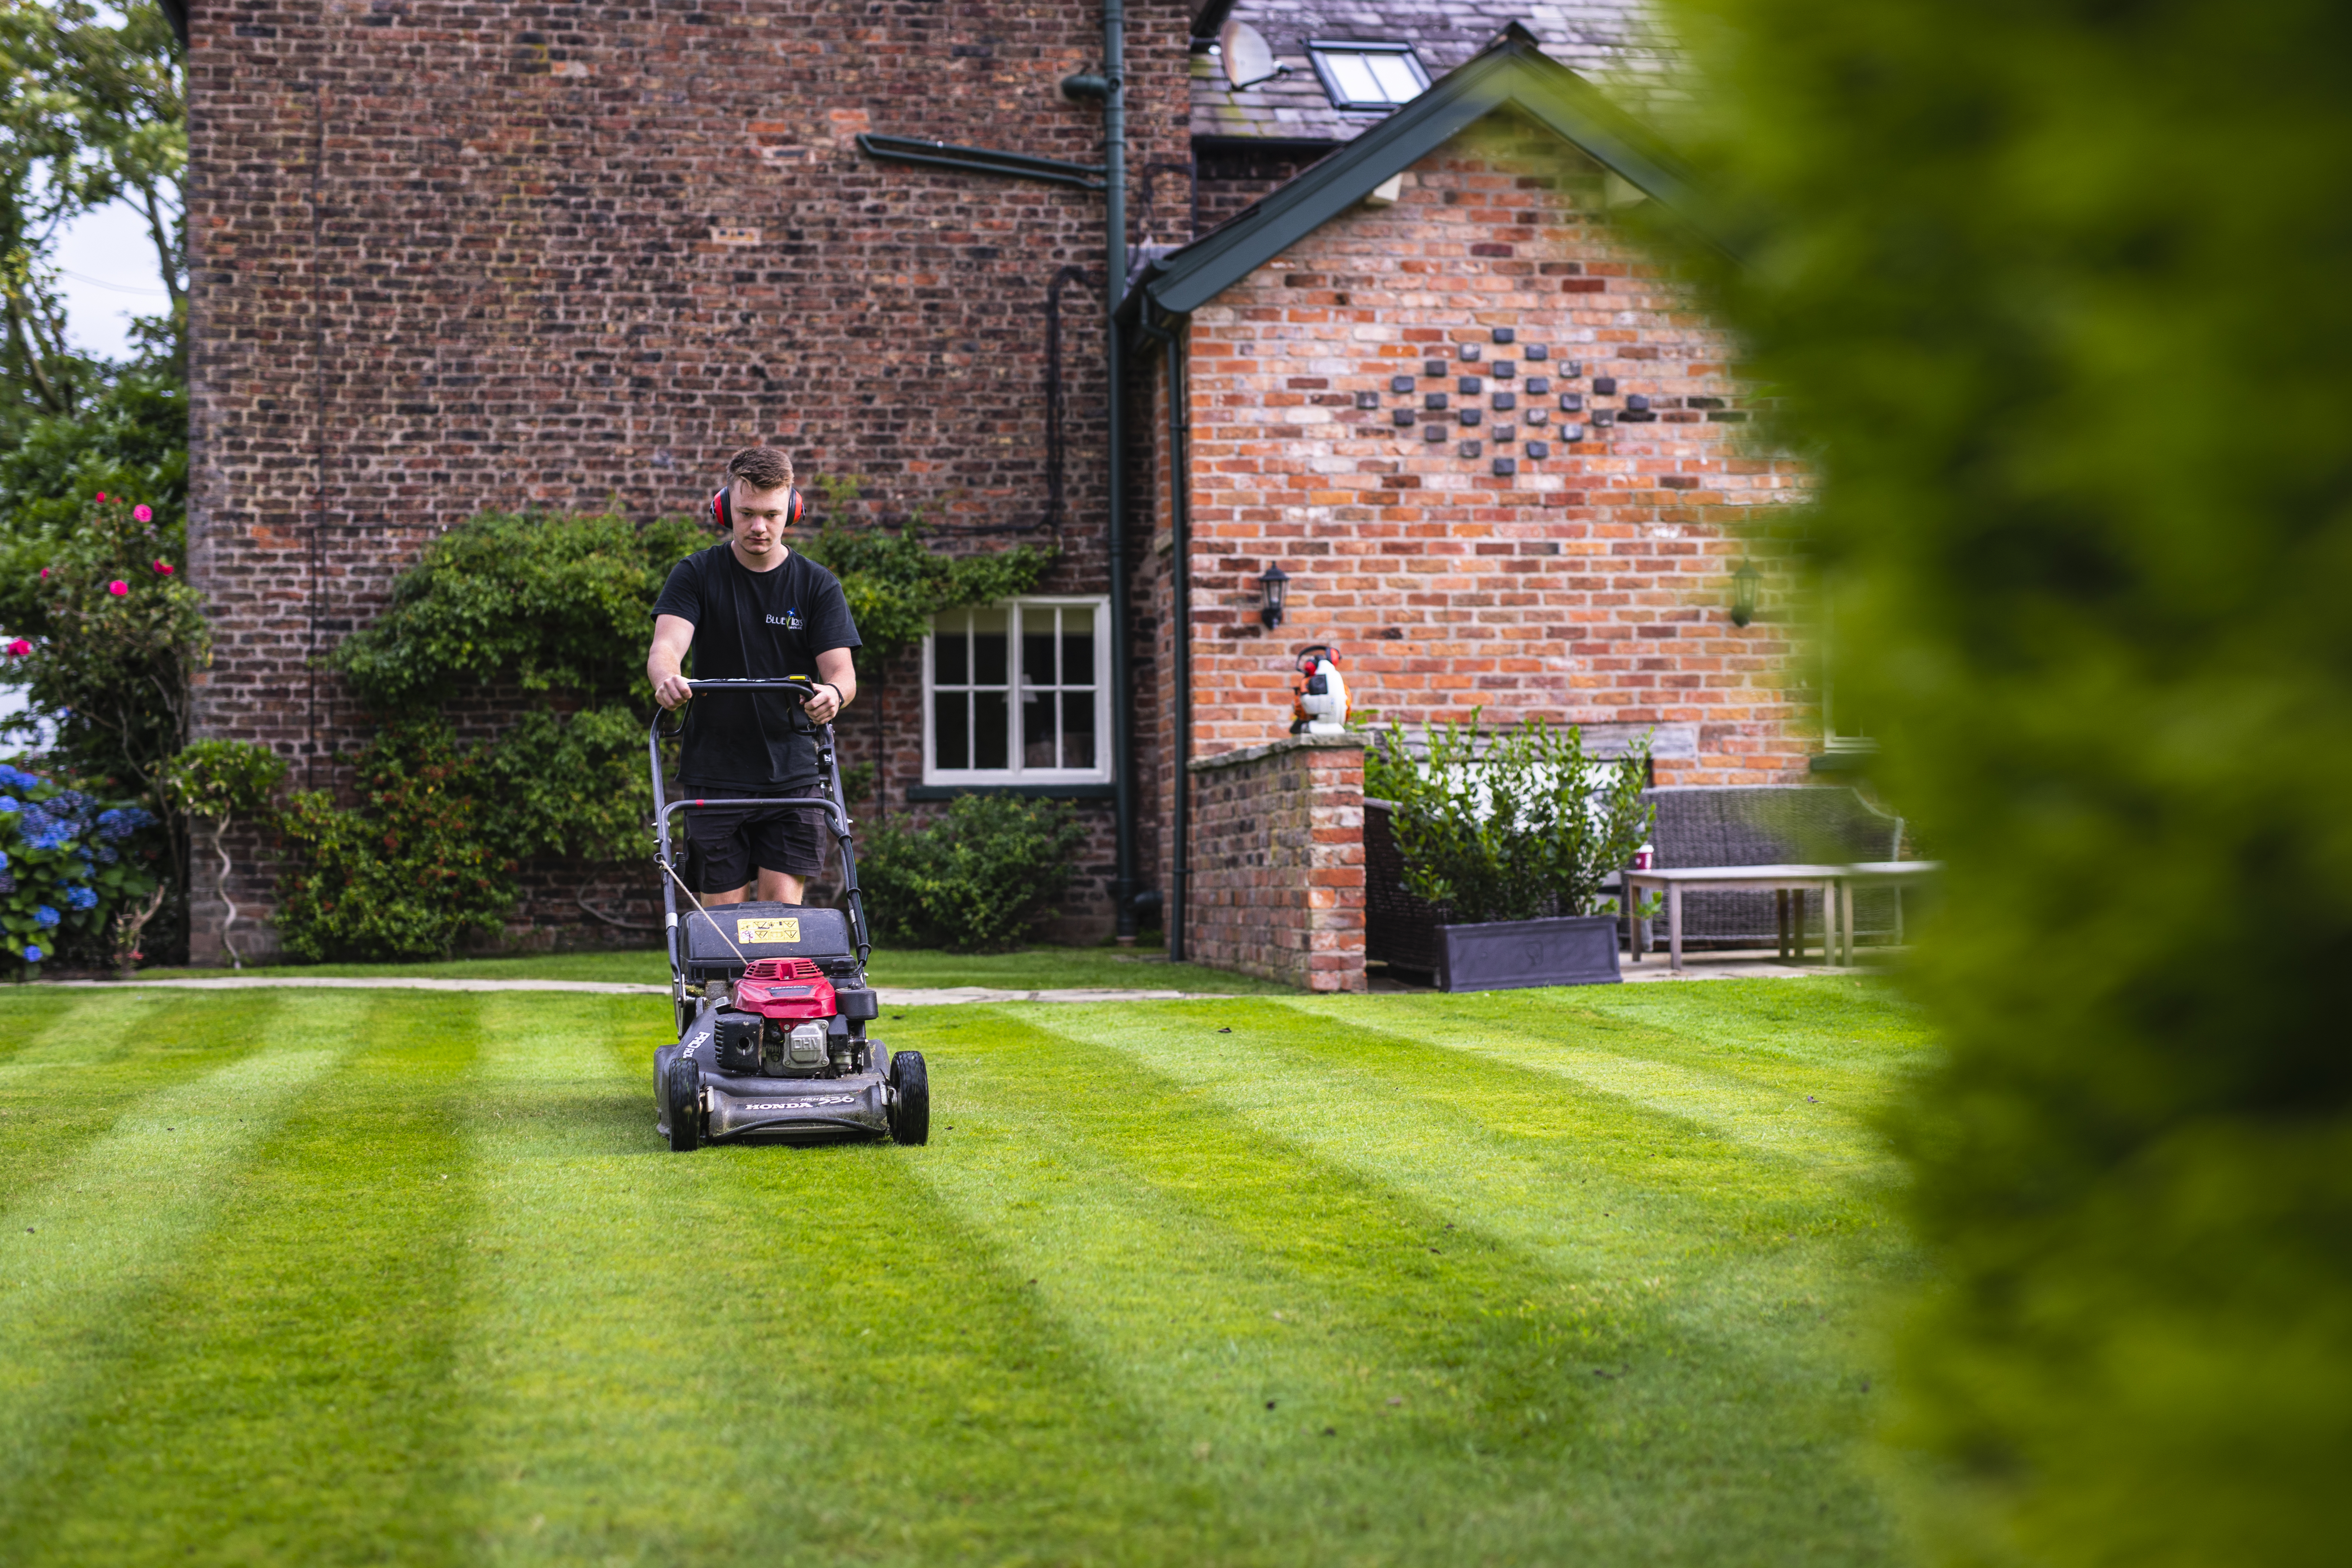 Spring Garden example. Maintenance team mowing stripes into the lawn. Staffordshire